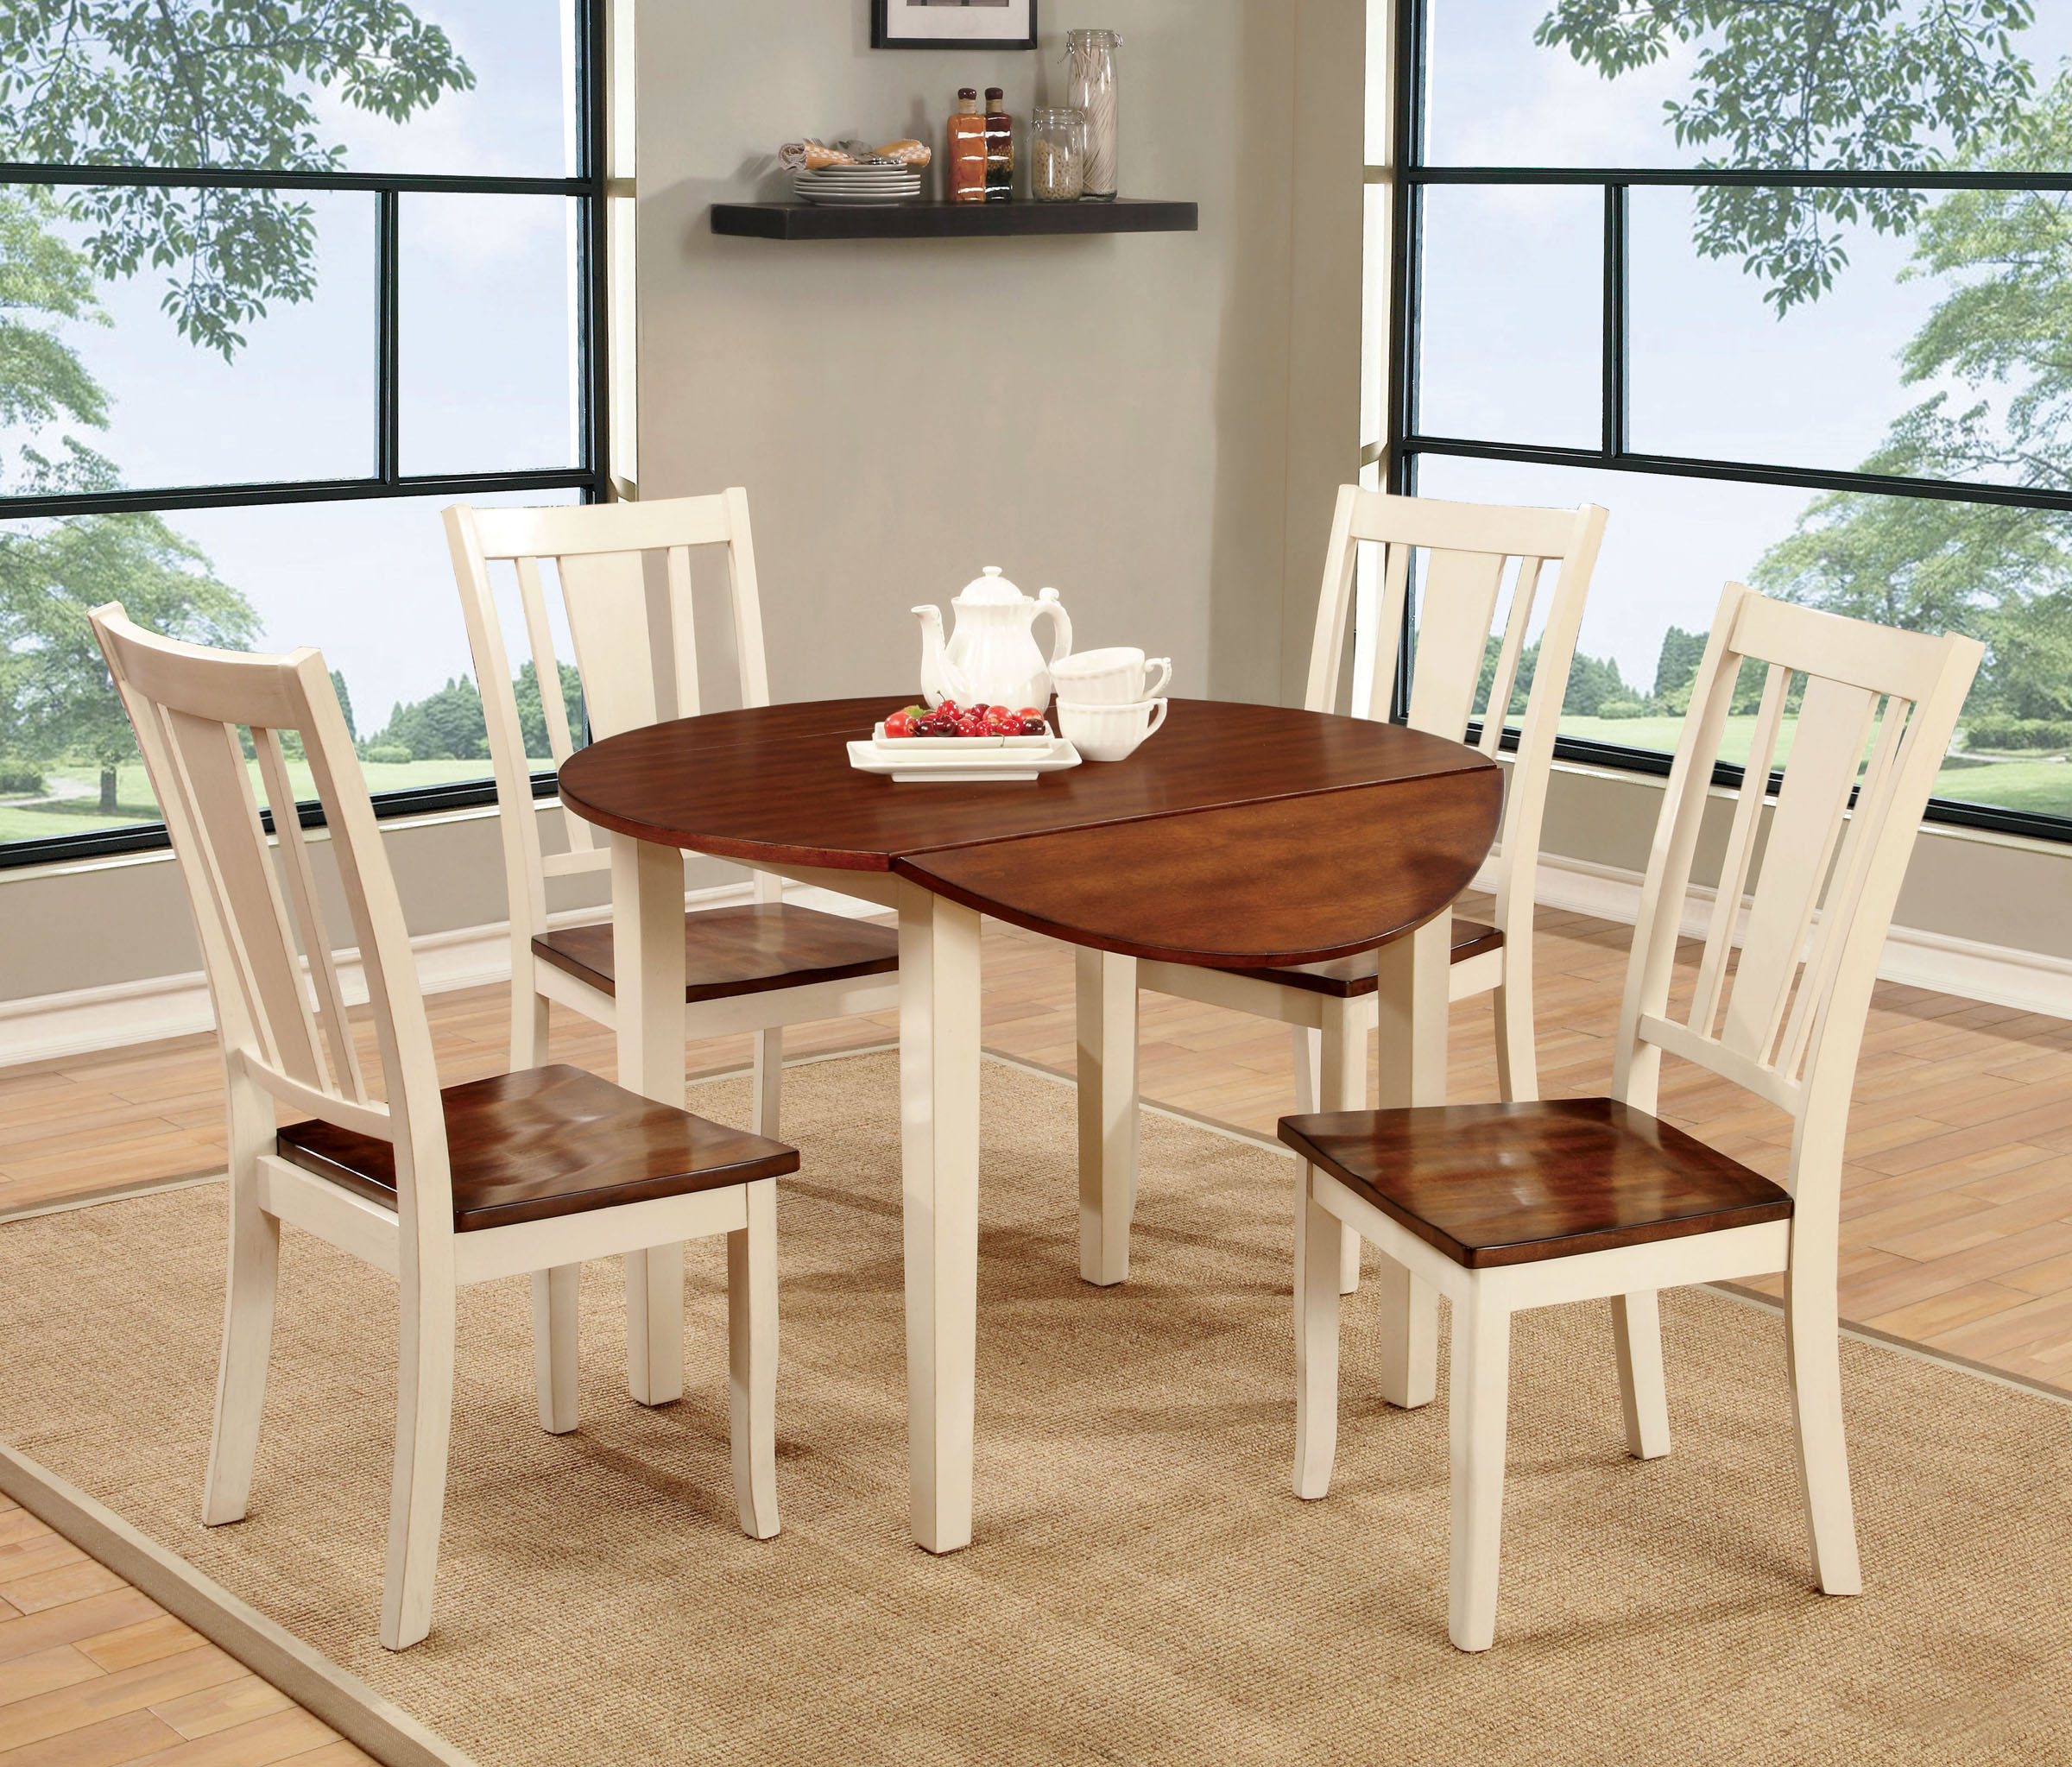 Round Dining Table With Extensions What Is A Dining Table Extension Leaf